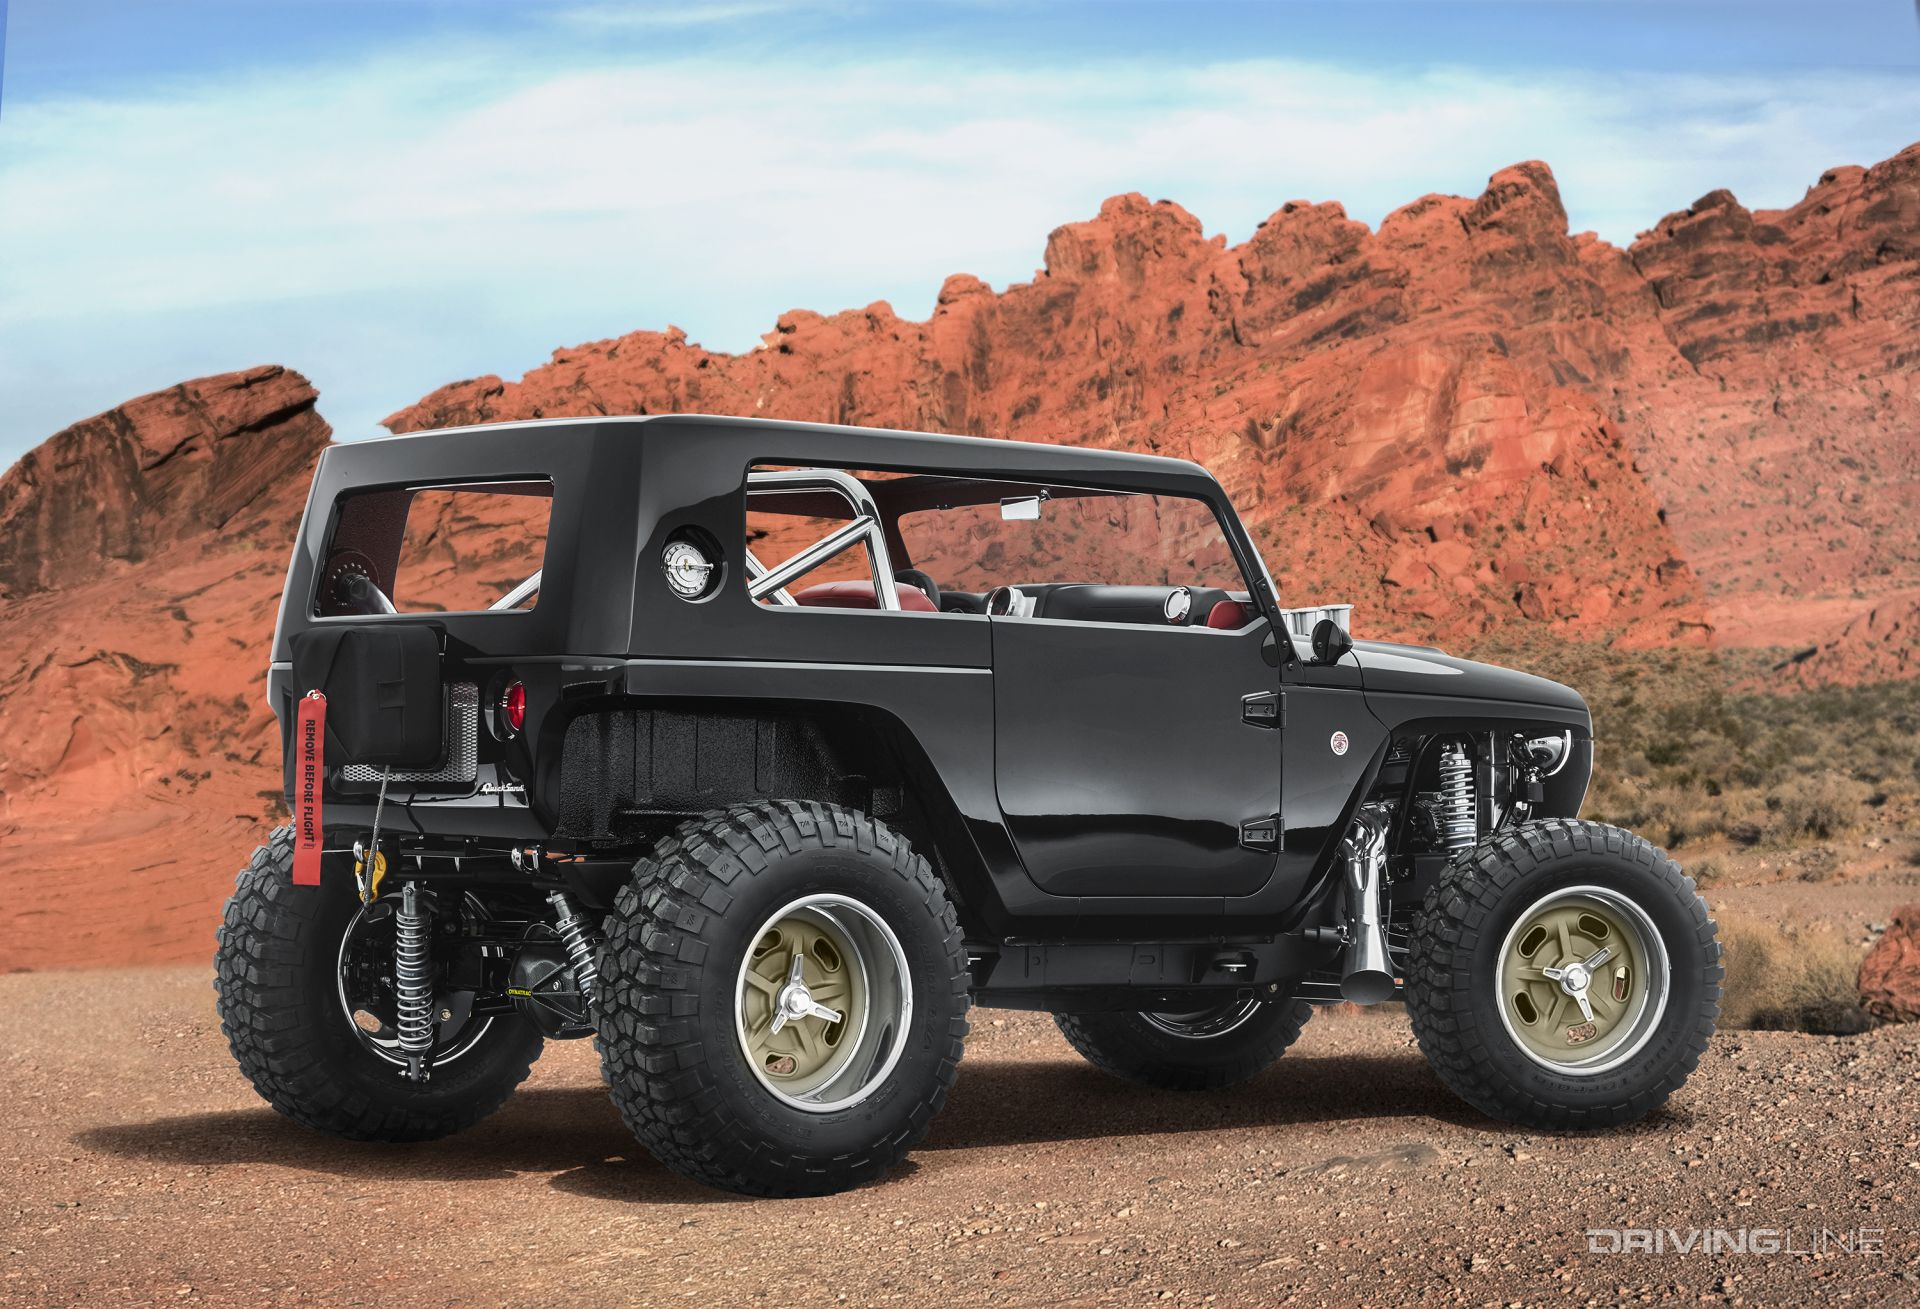 Jeep Wrangler Diesel >> Unveiled: 2017 Jeep Concept Vehicles | DrivingLine